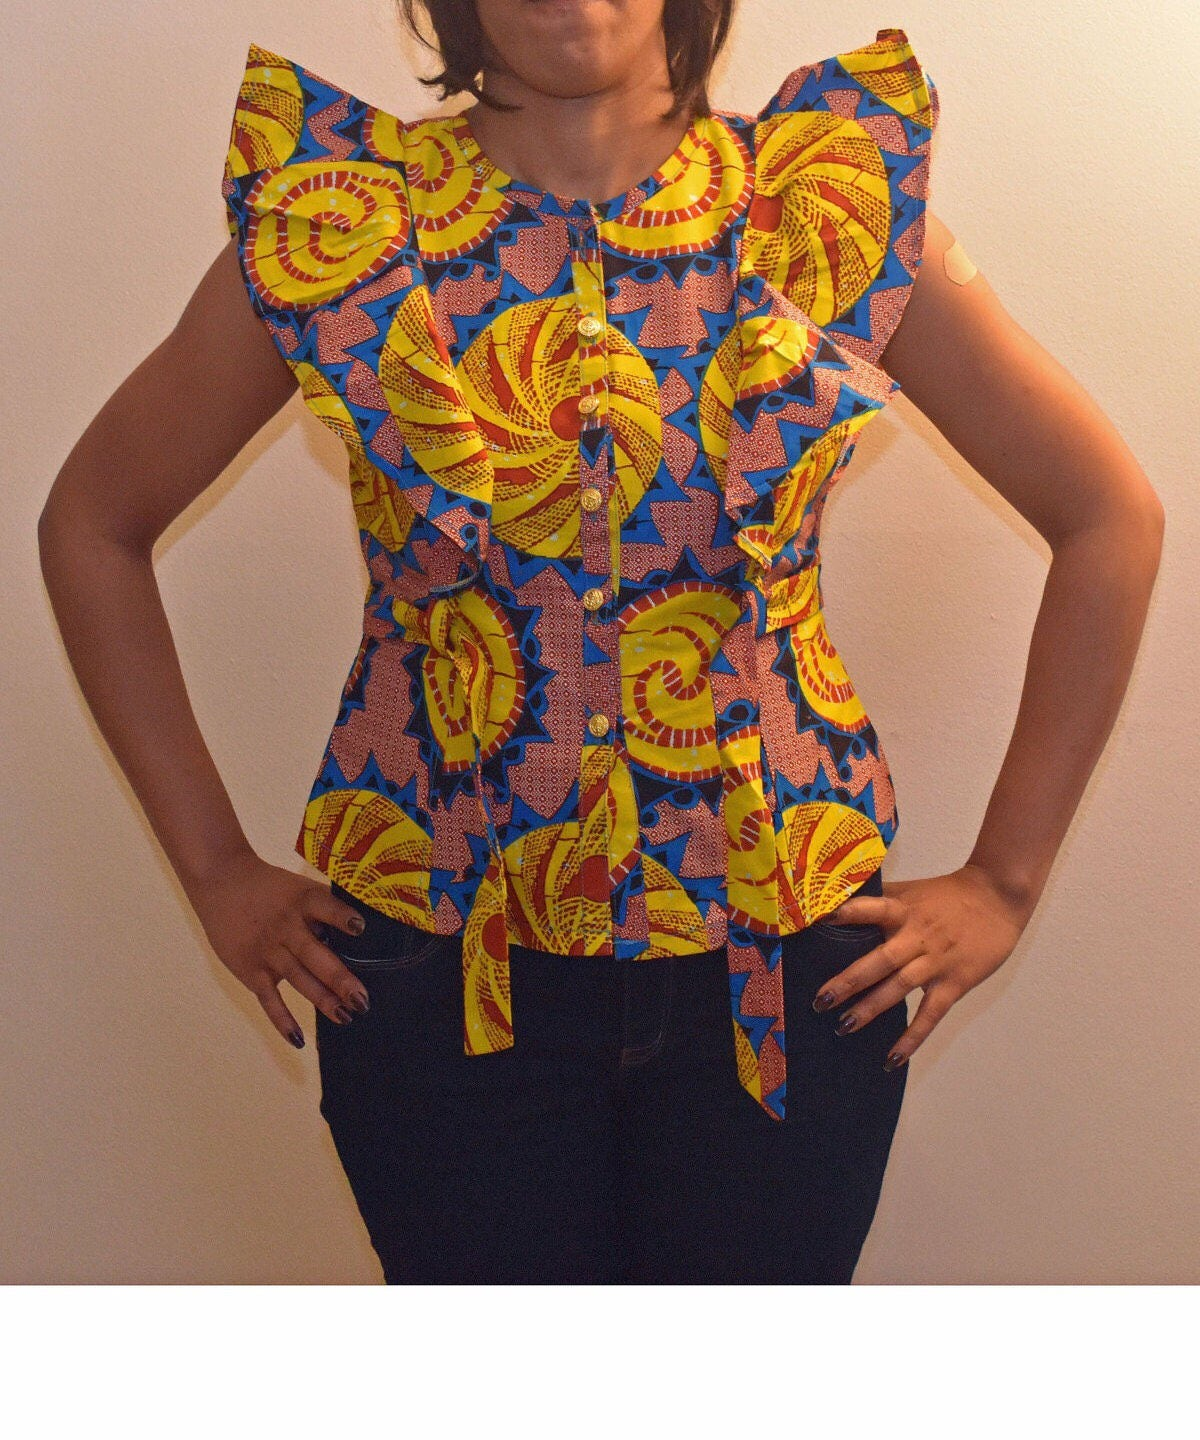 Ankara blouse Ruffle Blouse African Print BlouseSleeveless Pictures Of African Skirts And Blouses